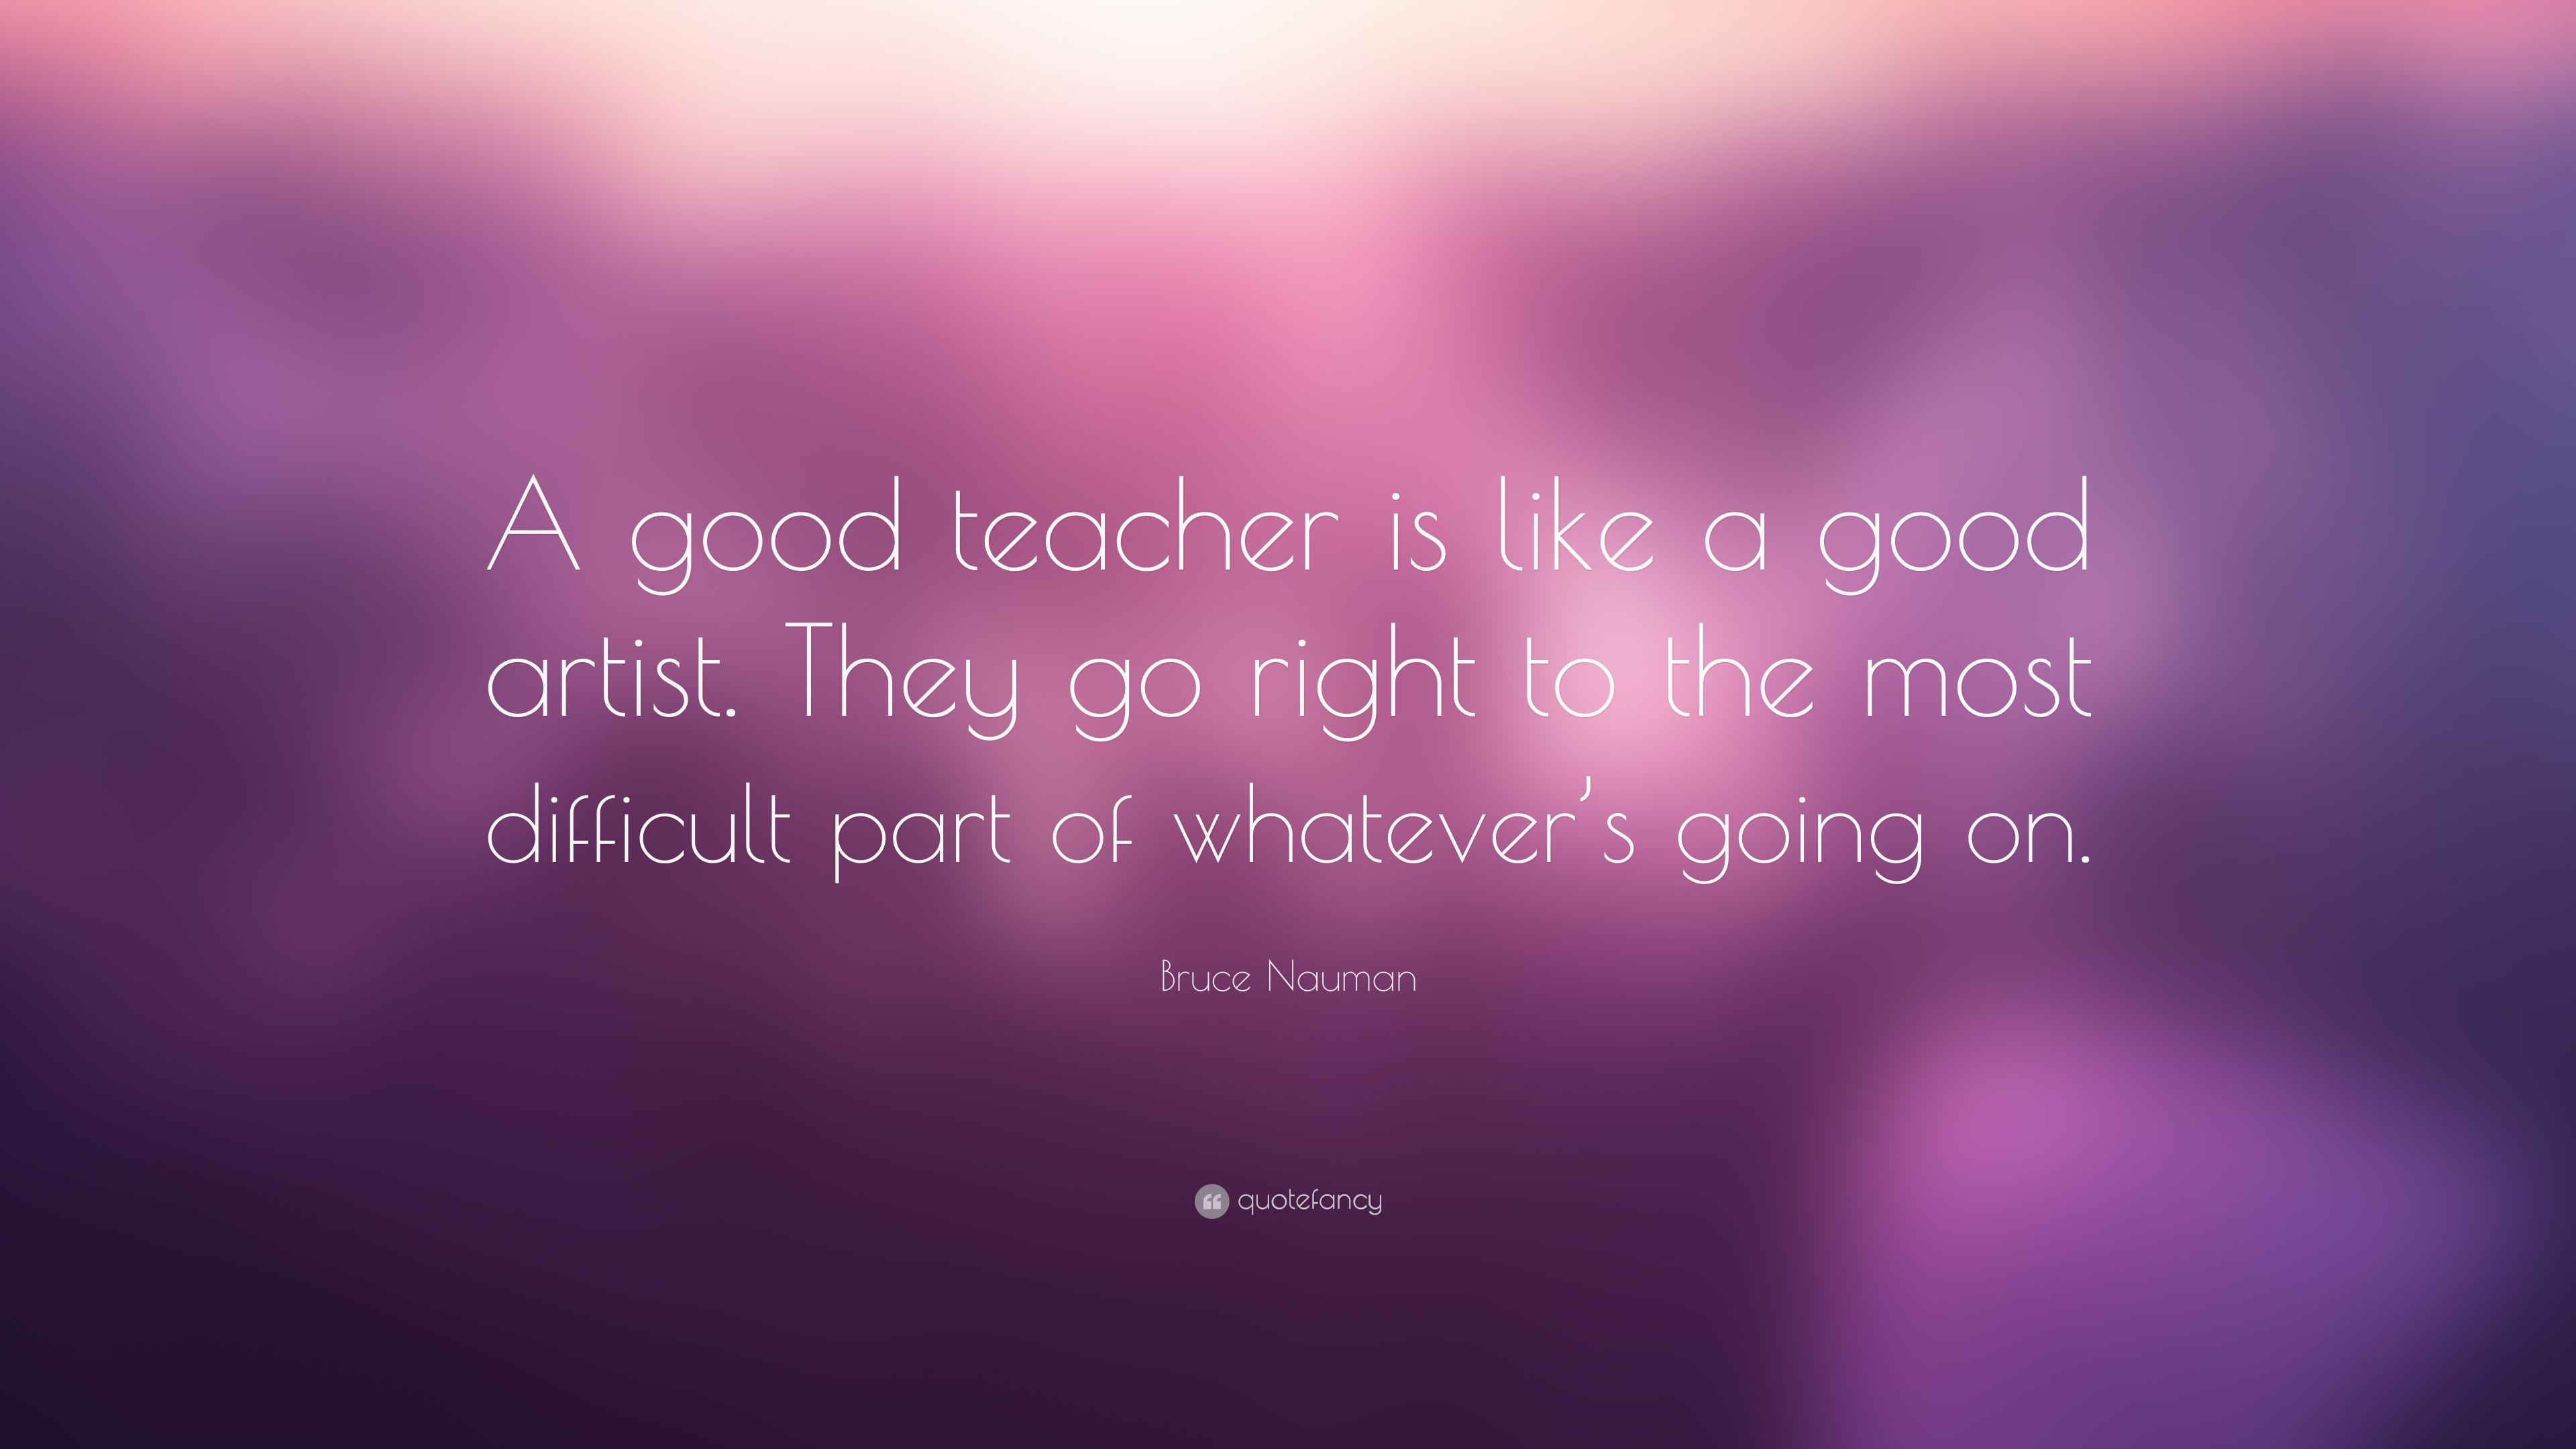 a good teacher is hard to An awesome teacher is hard to find, difficult to part with, and impossible to forget -  quote saying  the influence of a good teacher can never be erased quote.